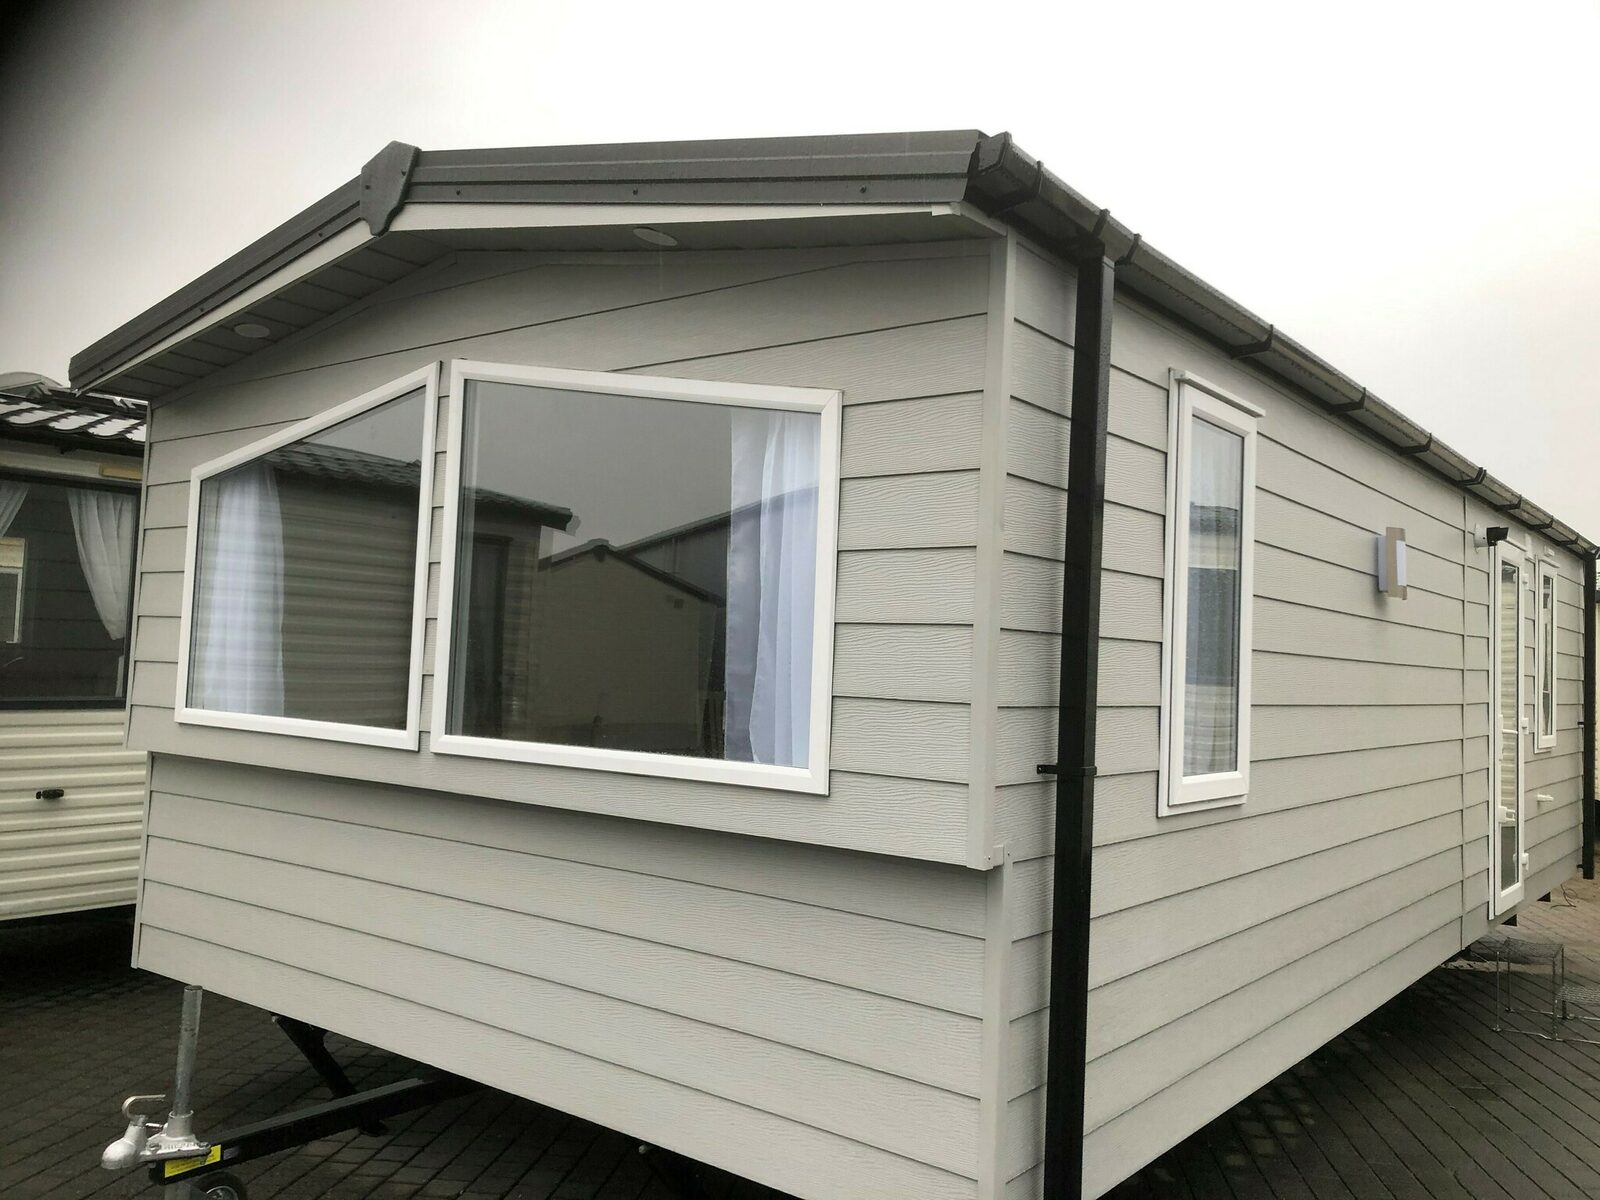 Chalet 4 persoons - Camping 't Veld